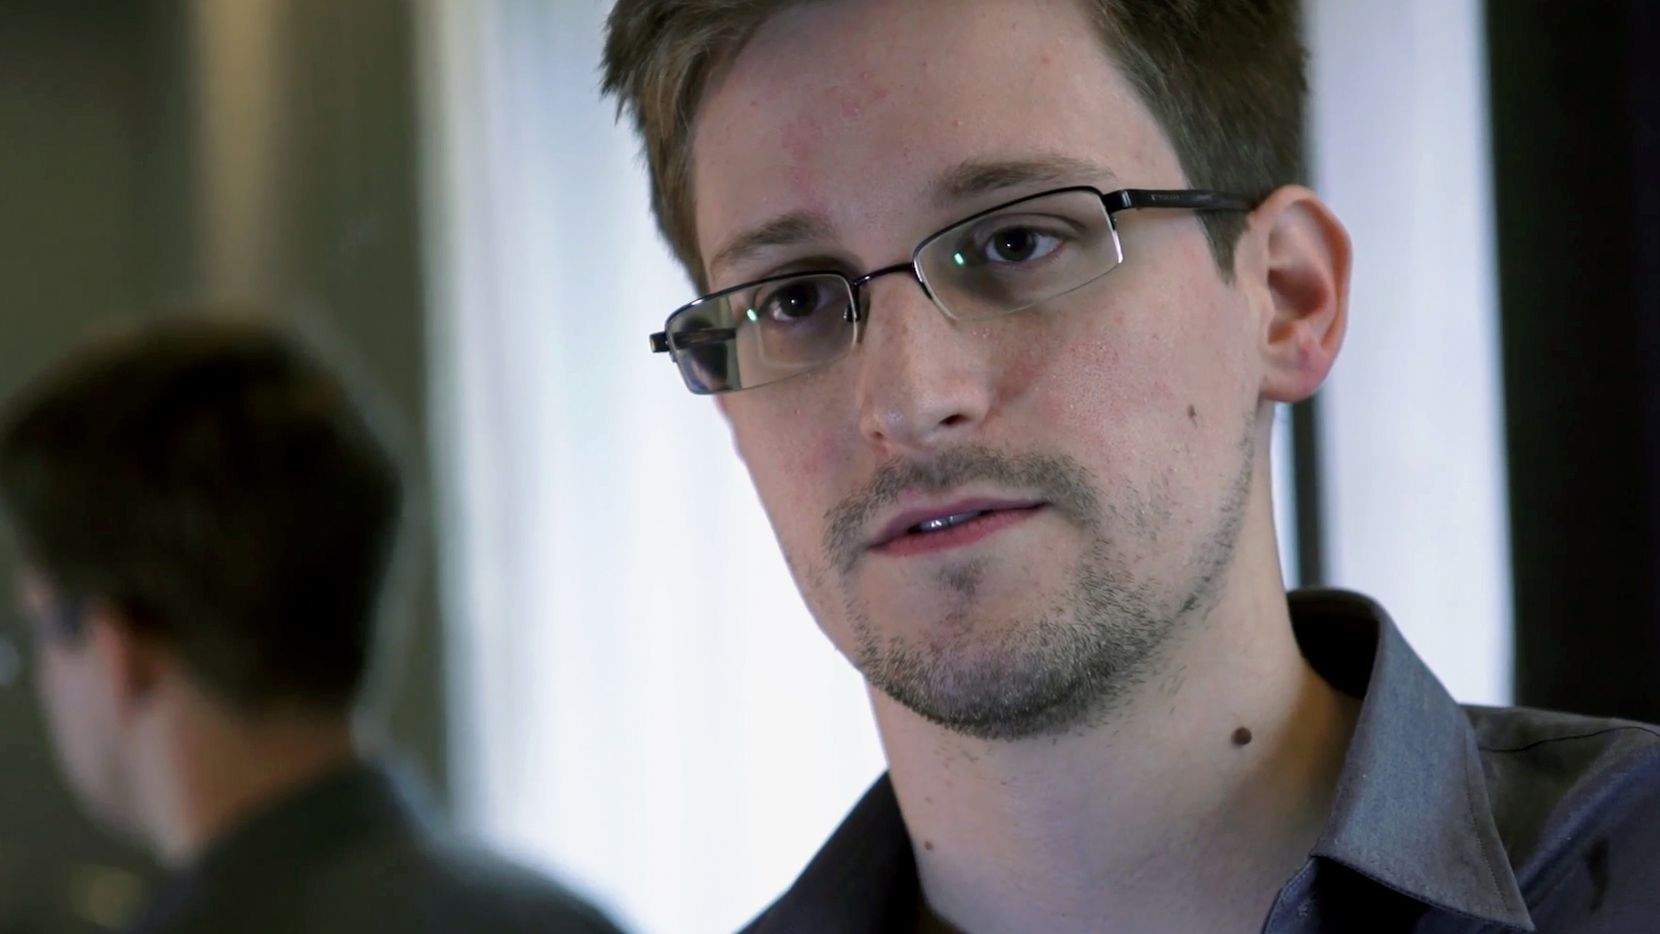 This photo provided by The Guardian Newspaper in London shows Edward Snowden, who worked as a contract employee at the National Security Agency, in Hong Kong on June 9, 2013. According to a Department of Justice official on June 21, 2013, a criminal complaint has been filed against Snowden in the NSA surveillance case.